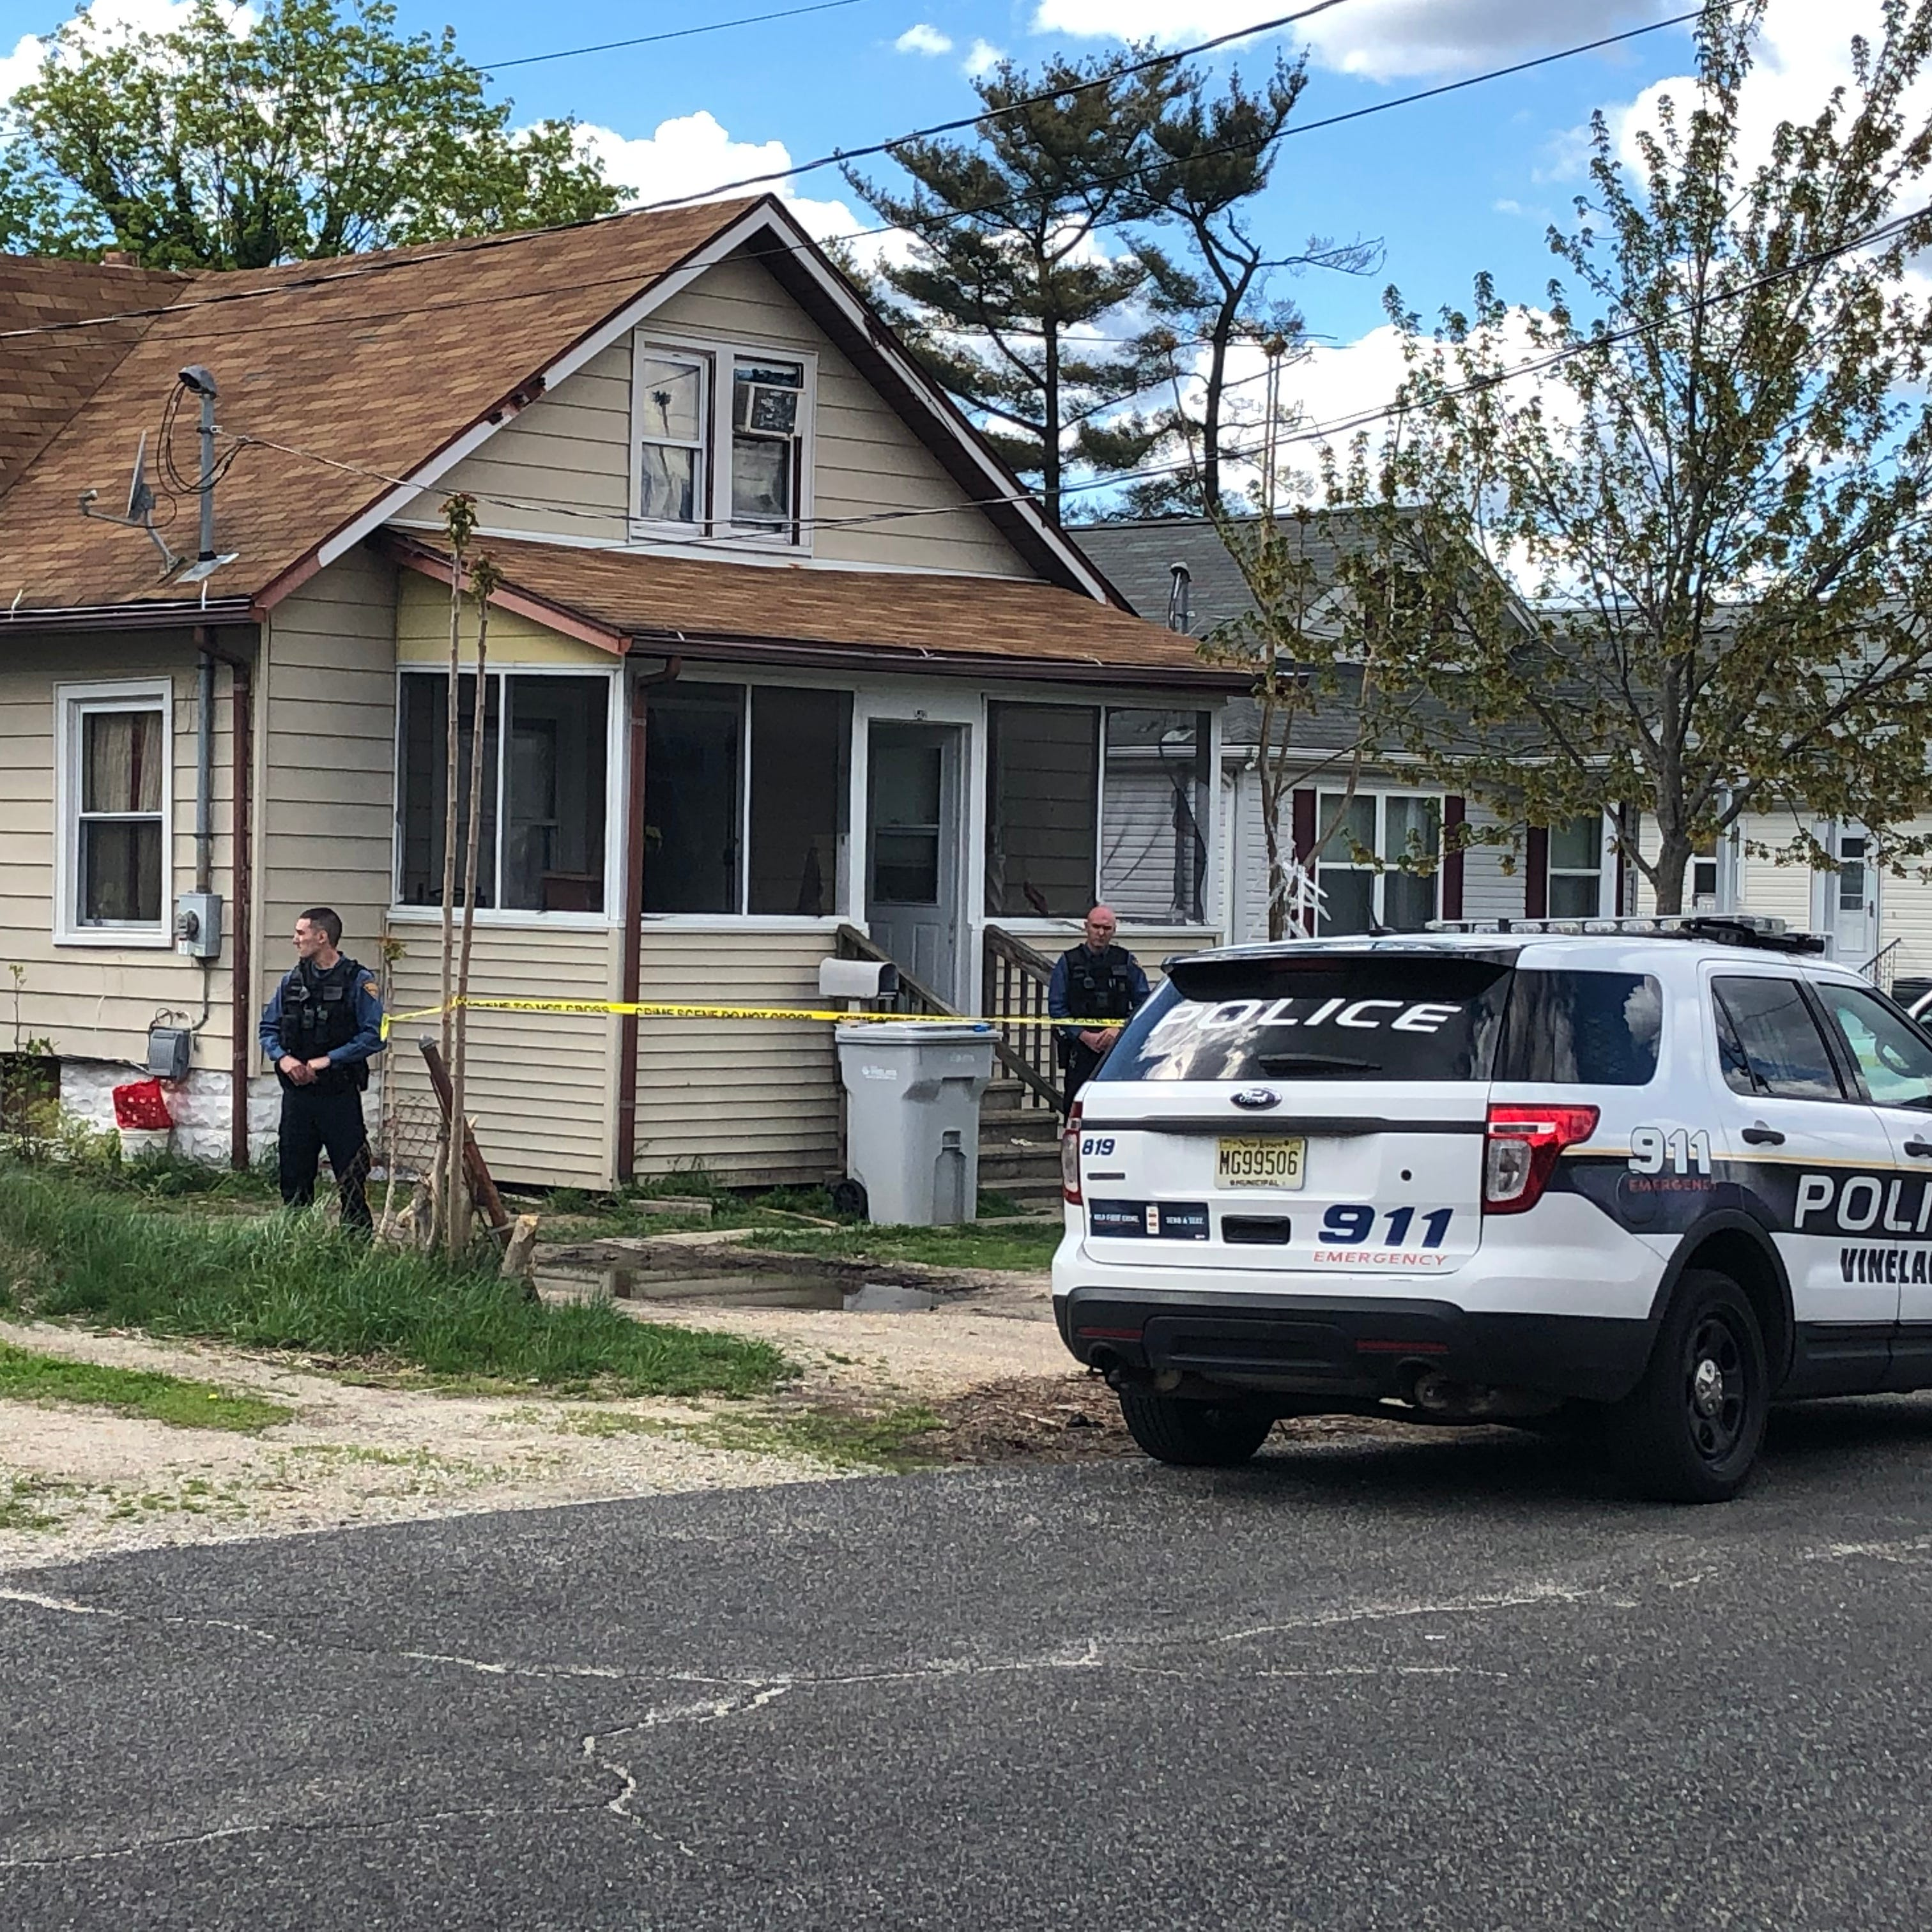 Vineland Police investigation unfolding on Crystal Avenue